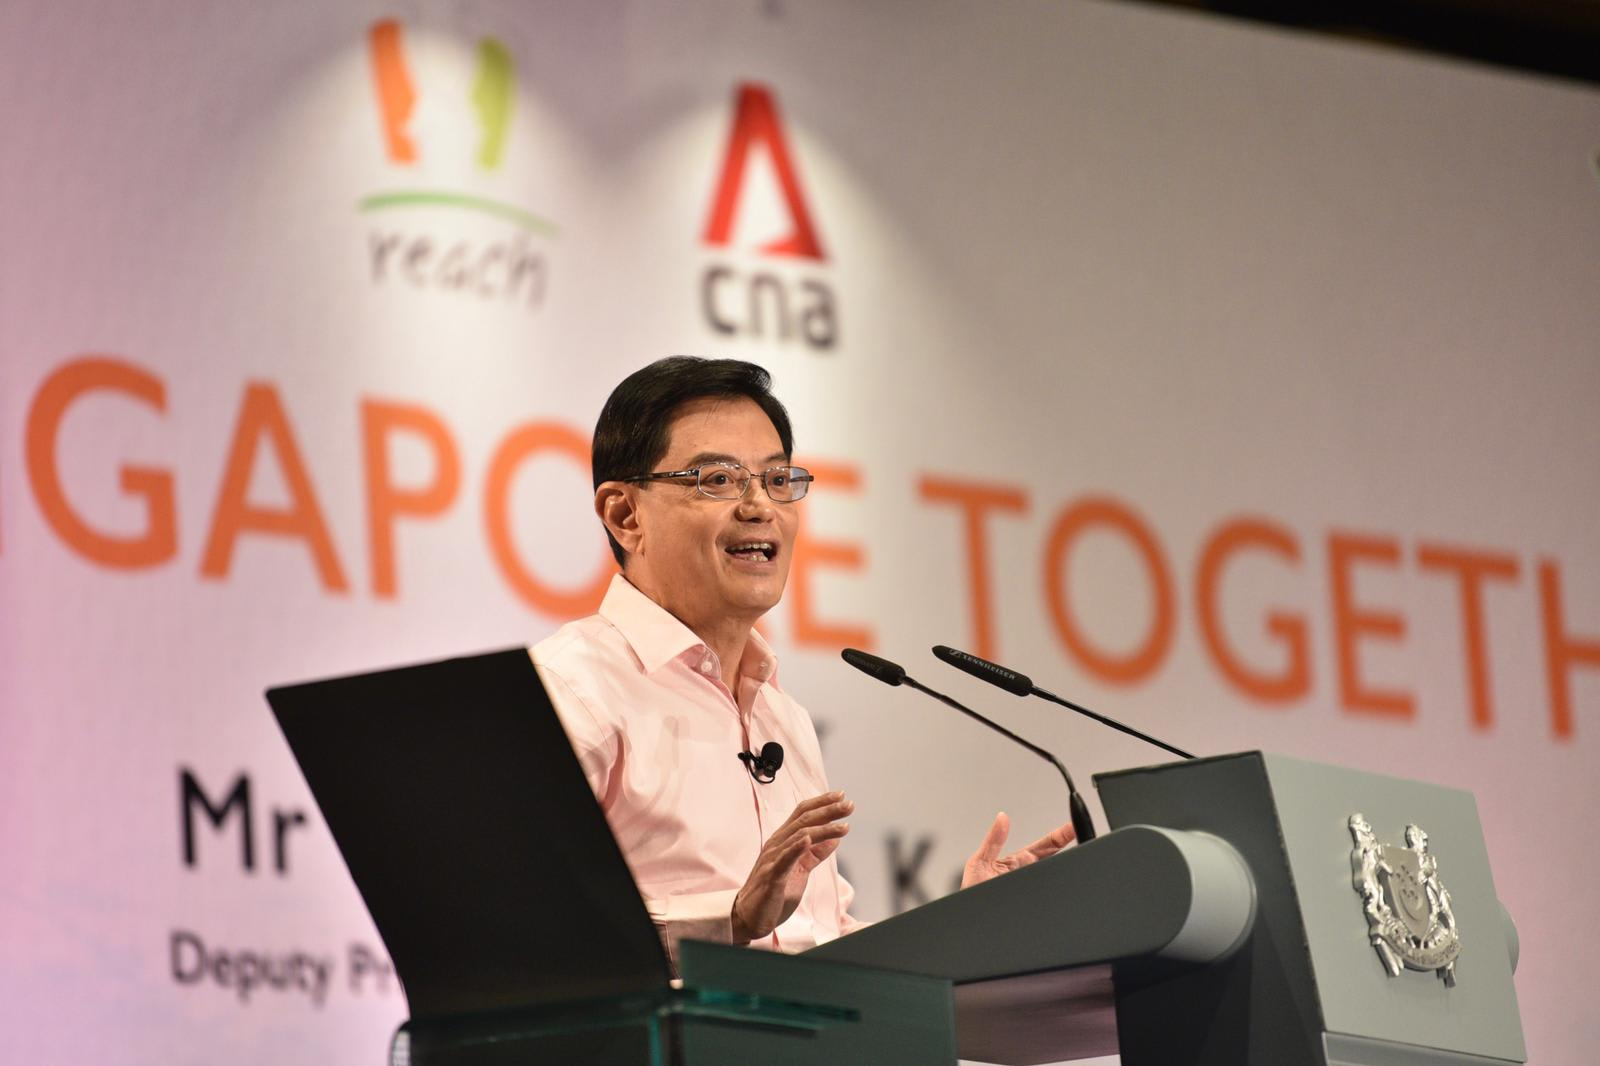 DPM Heng Swee Keat on working with Singaporeans to design, implement policies | Full speech